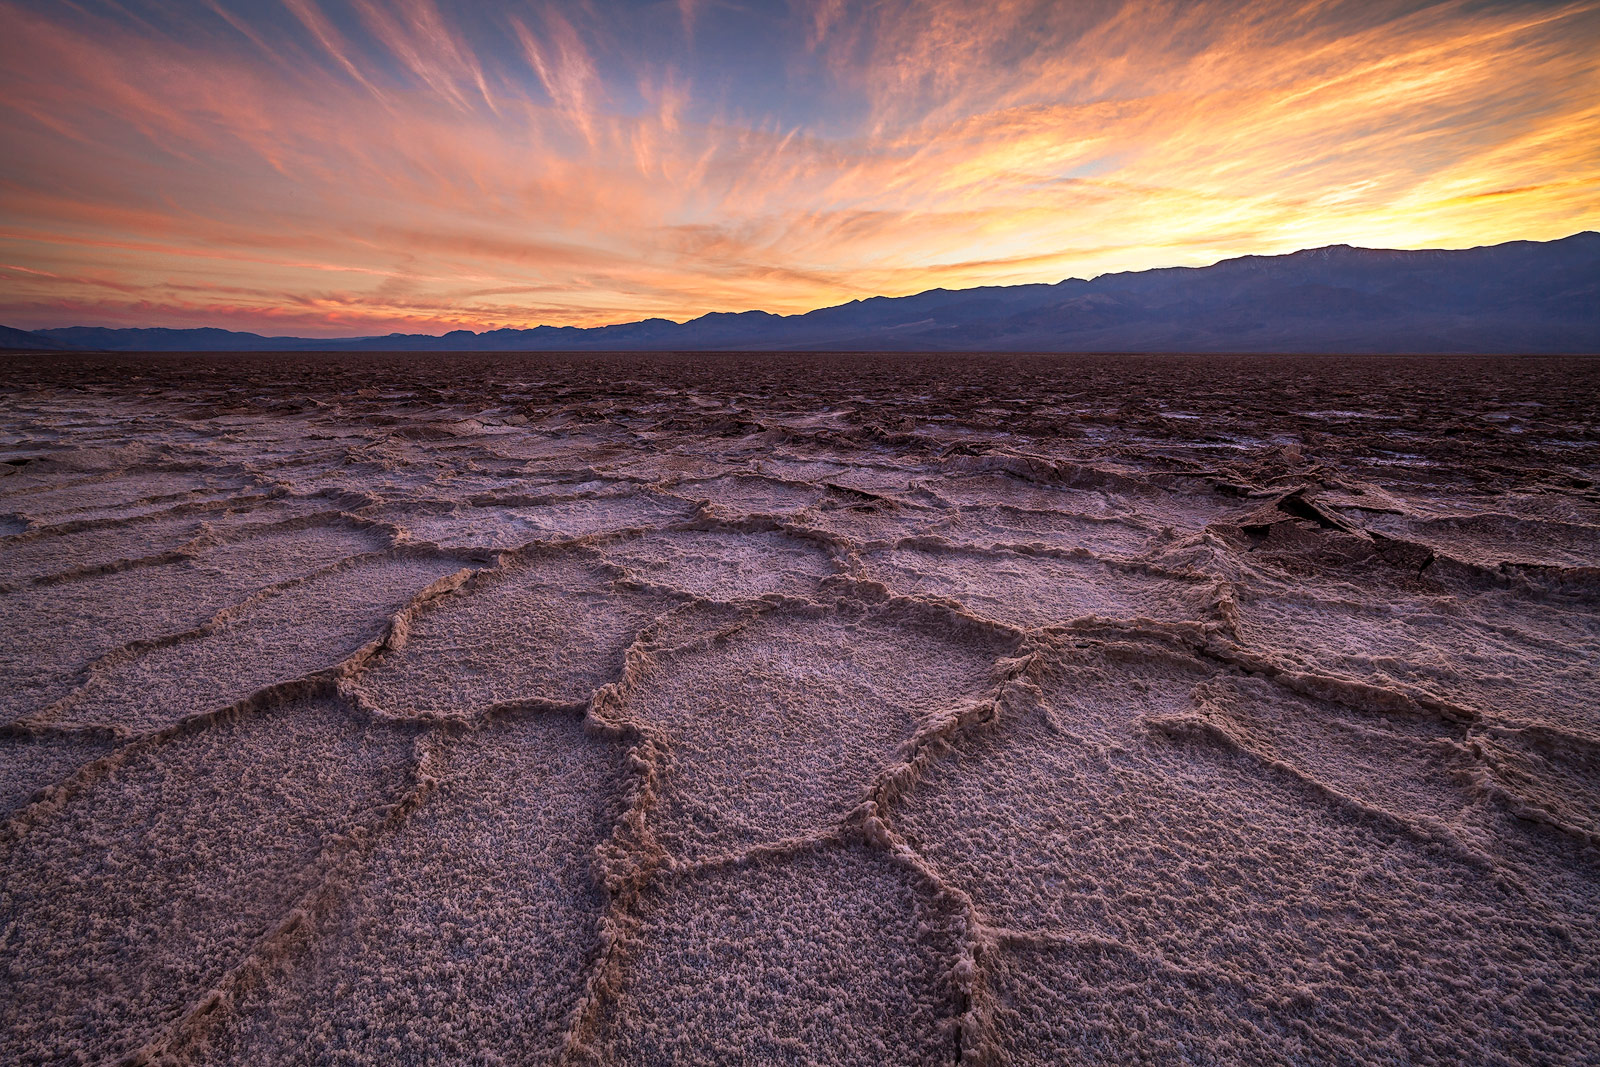 america,bad water,badwater,california,death valley,death valley national park,evening,north america,playa,playas,sunset,united states,us,usa,west, photo